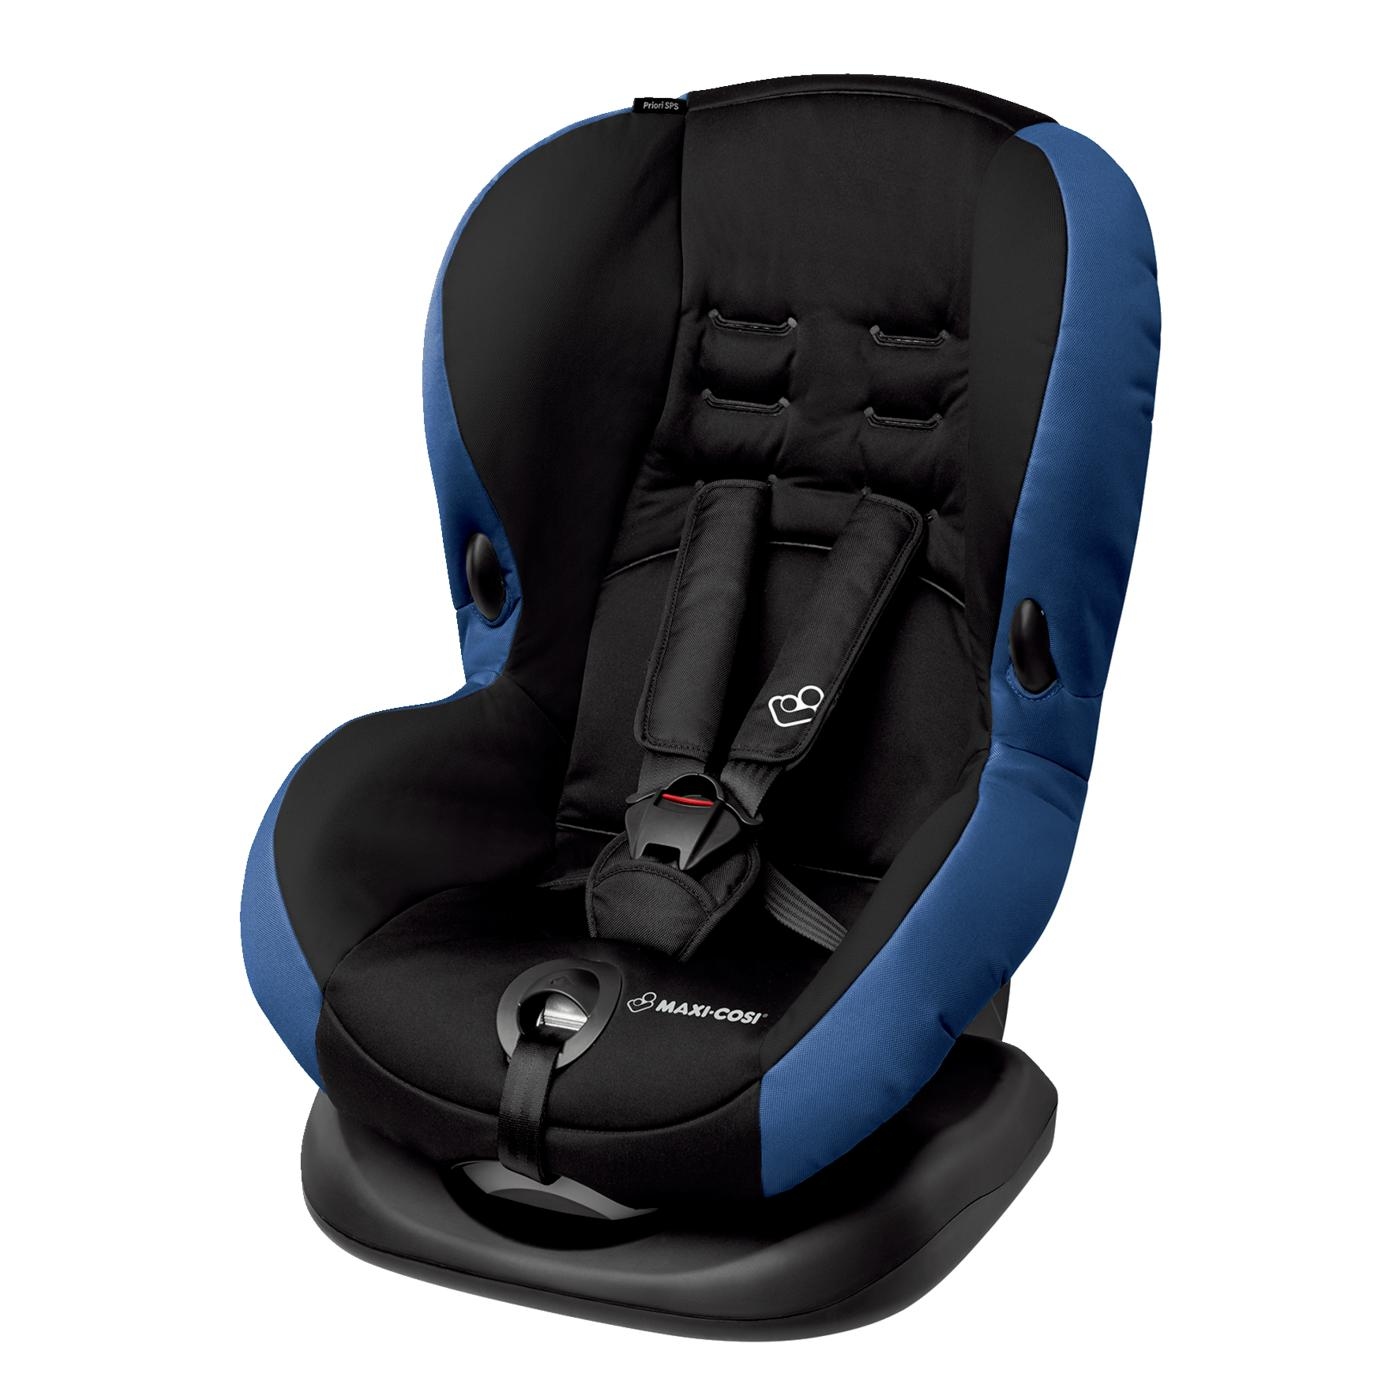 maxi cosi auto kindersitz priori sps plus navy black online g nstig kaufen. Black Bedroom Furniture Sets. Home Design Ideas